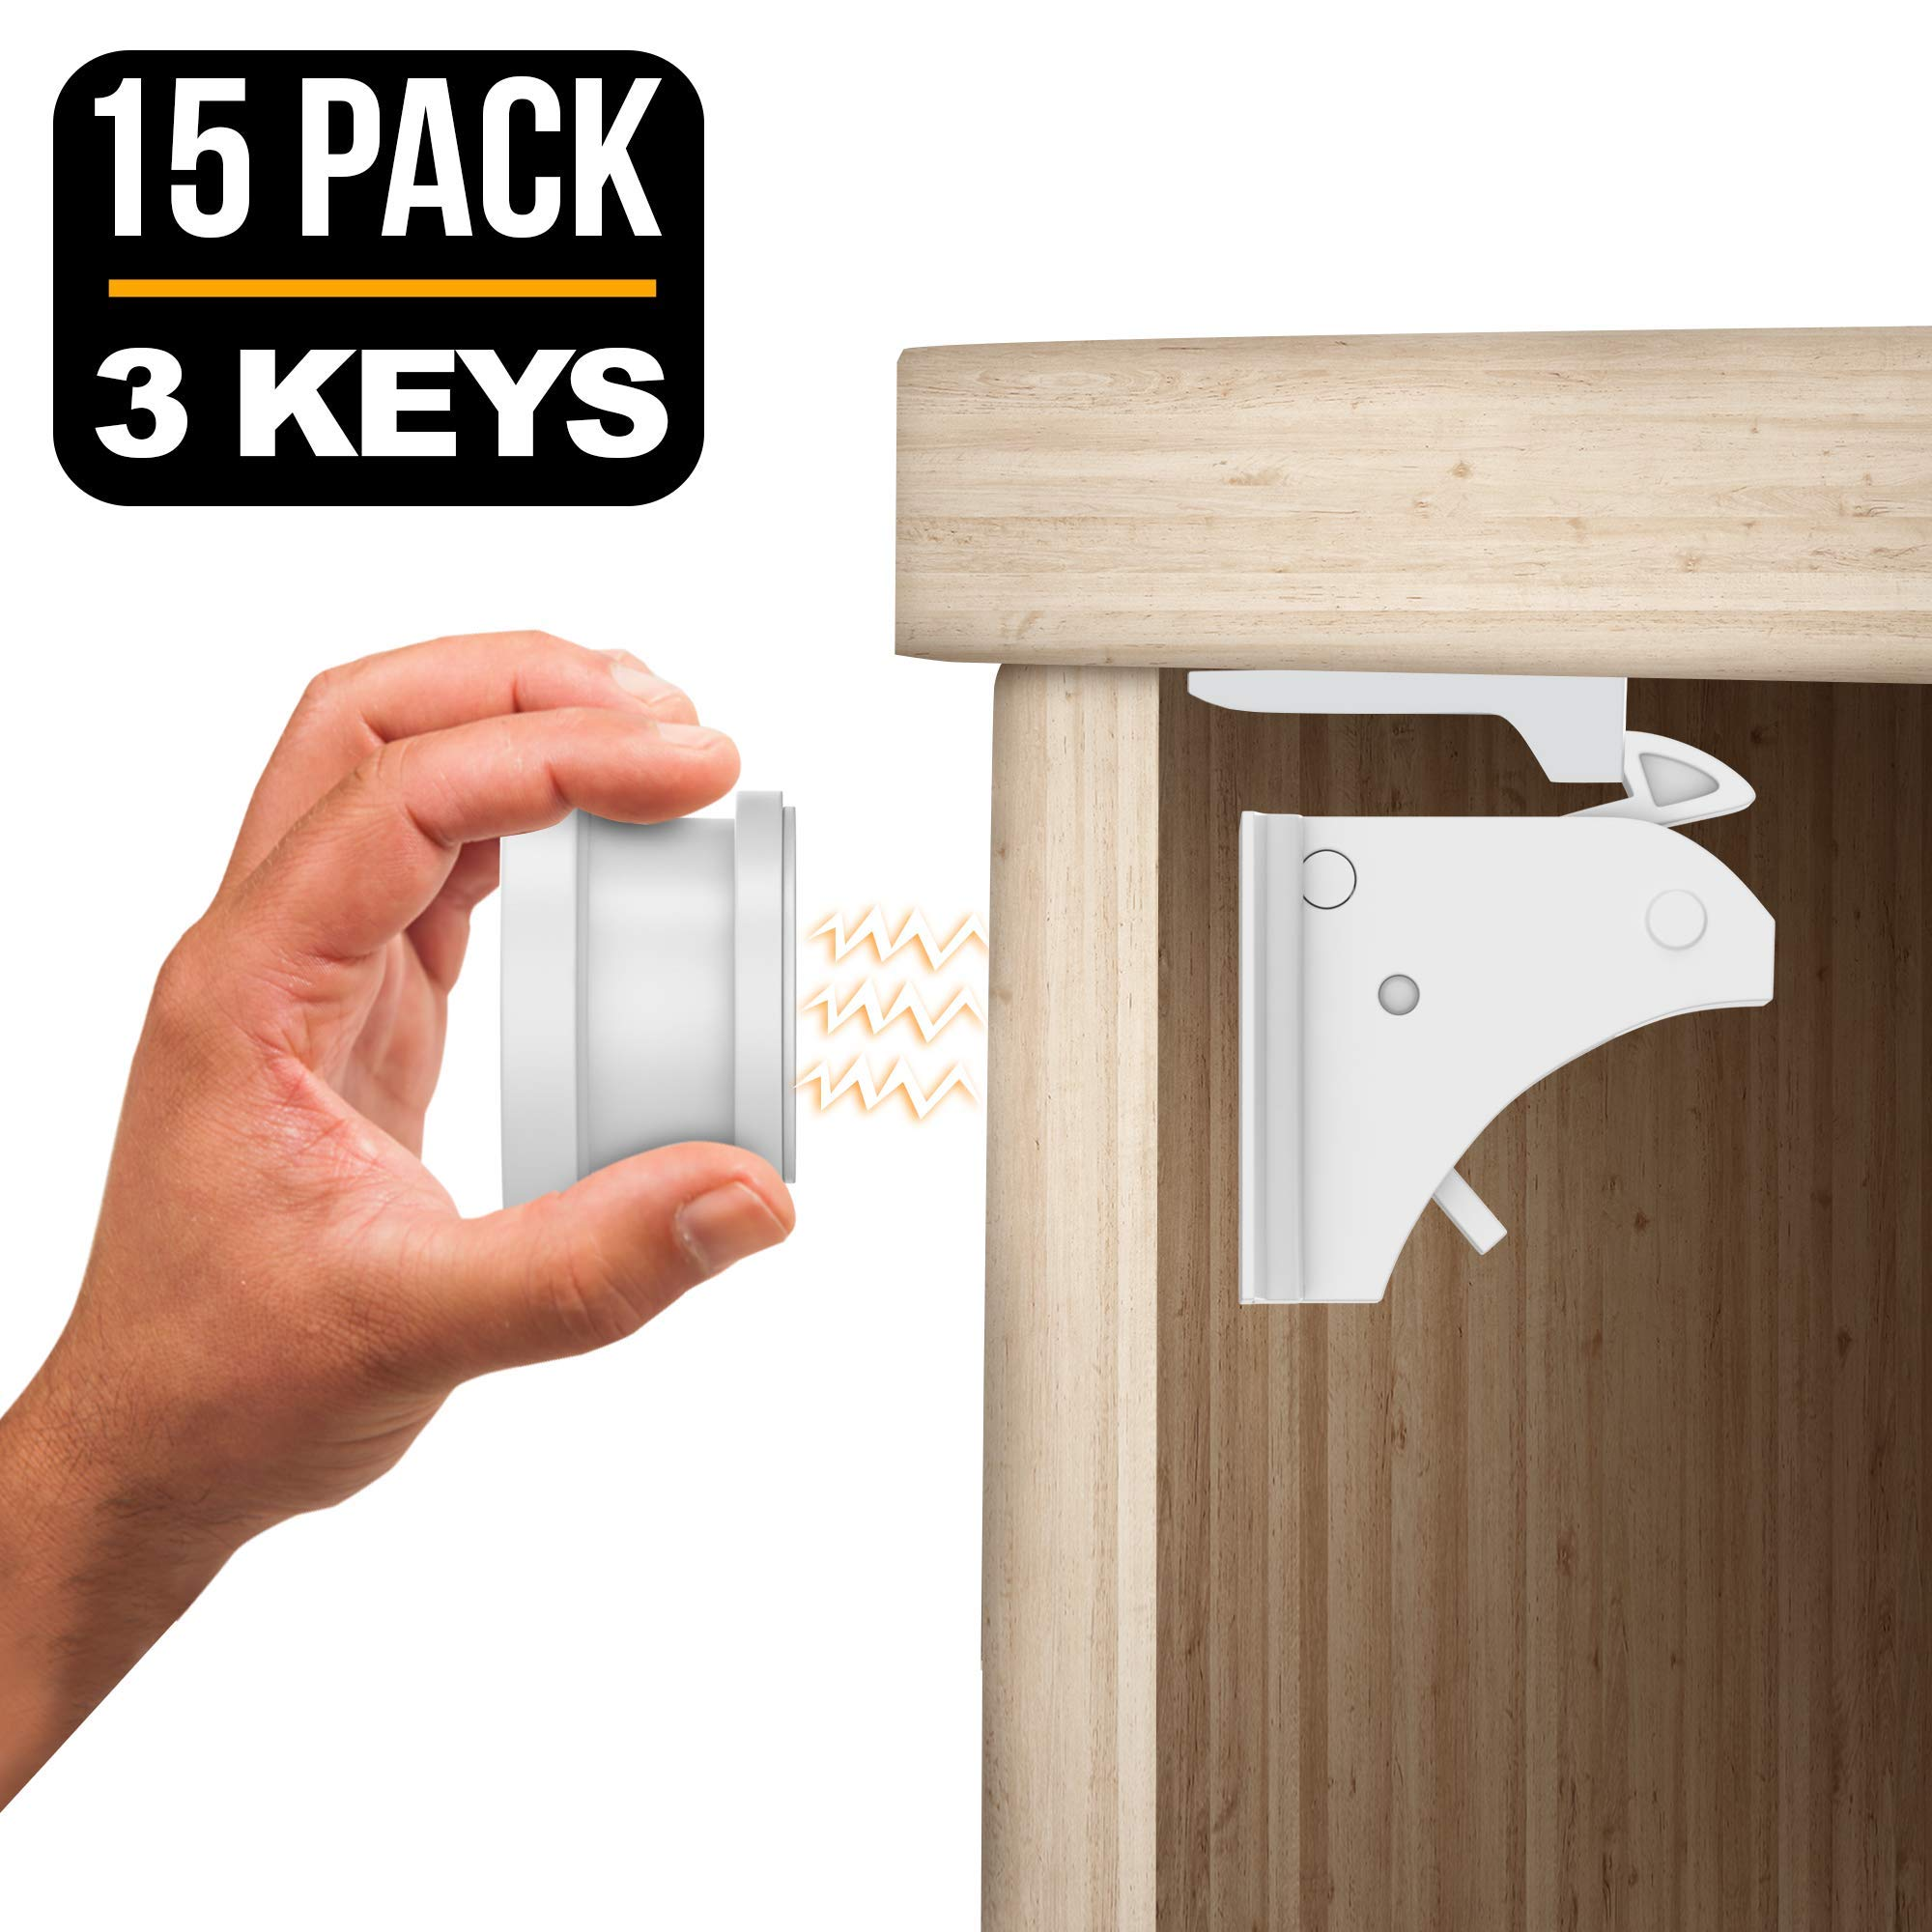 TinyPatrol 15 Locks with 3 Keys Baby Safety Cabinet Lock [EASY SET UP] Magnetic Cabinet Locks RELIABLE and DURABLE BABYPROOFING for Cabinets, Drawers [INVISIBLE LOCKS -OUTWIT SMART TODDLERS] by TinyPatrol